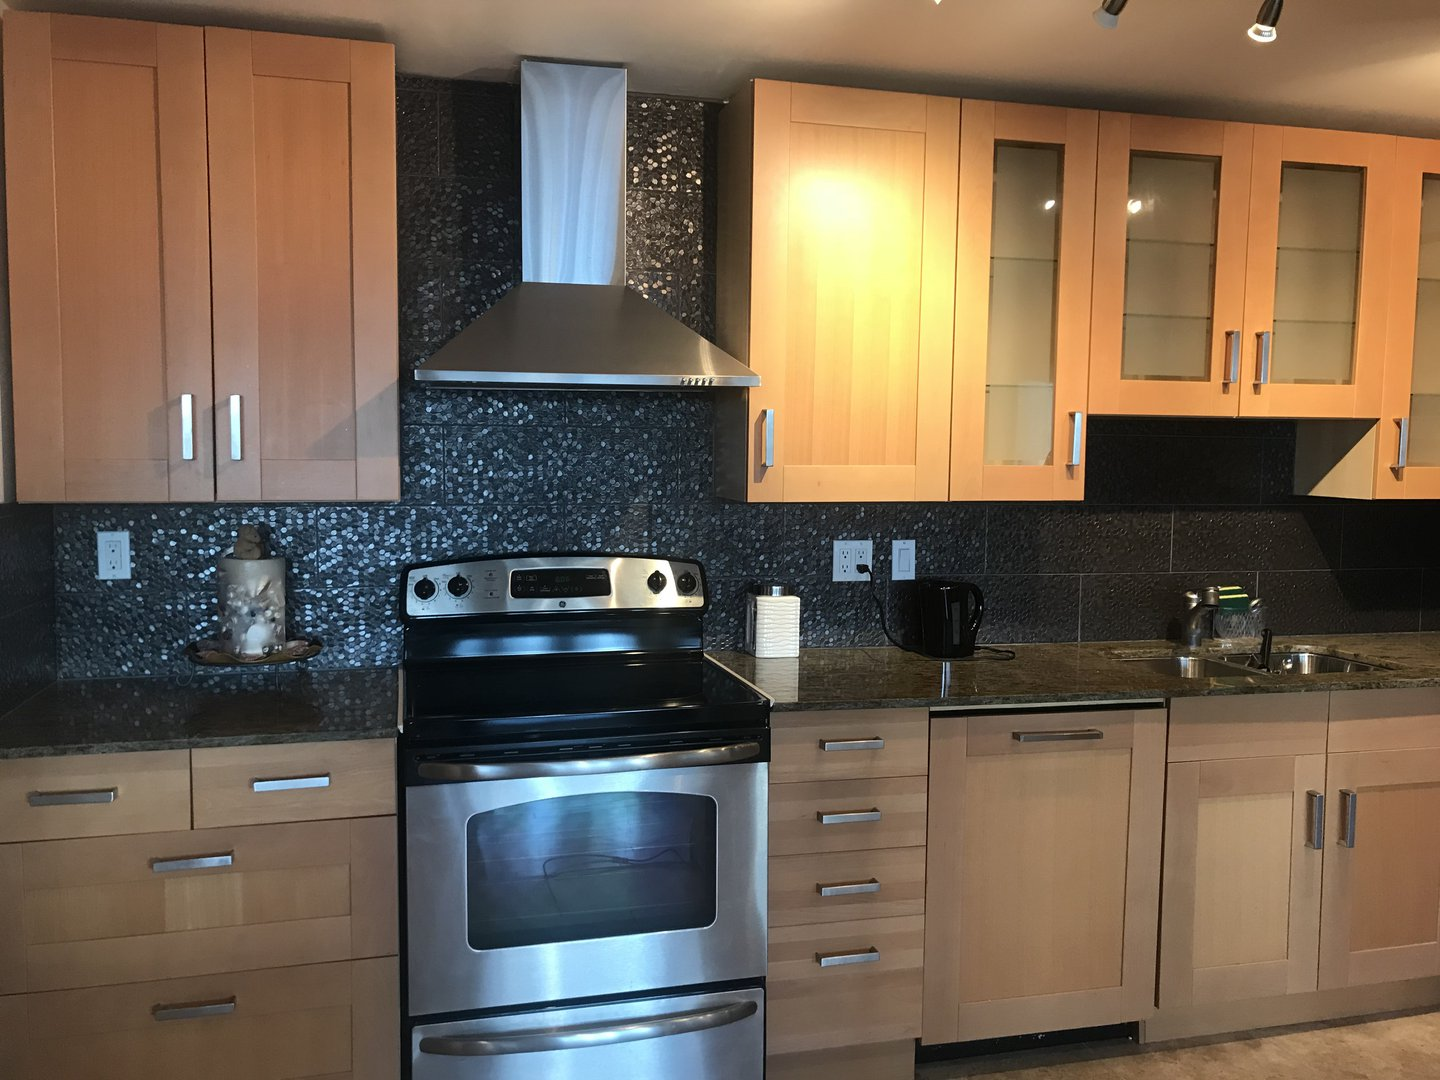 Condo for rent at 475 The West Mall, Etobicoke, ON. This is the kitchen with hardwood floor and stainless steel.